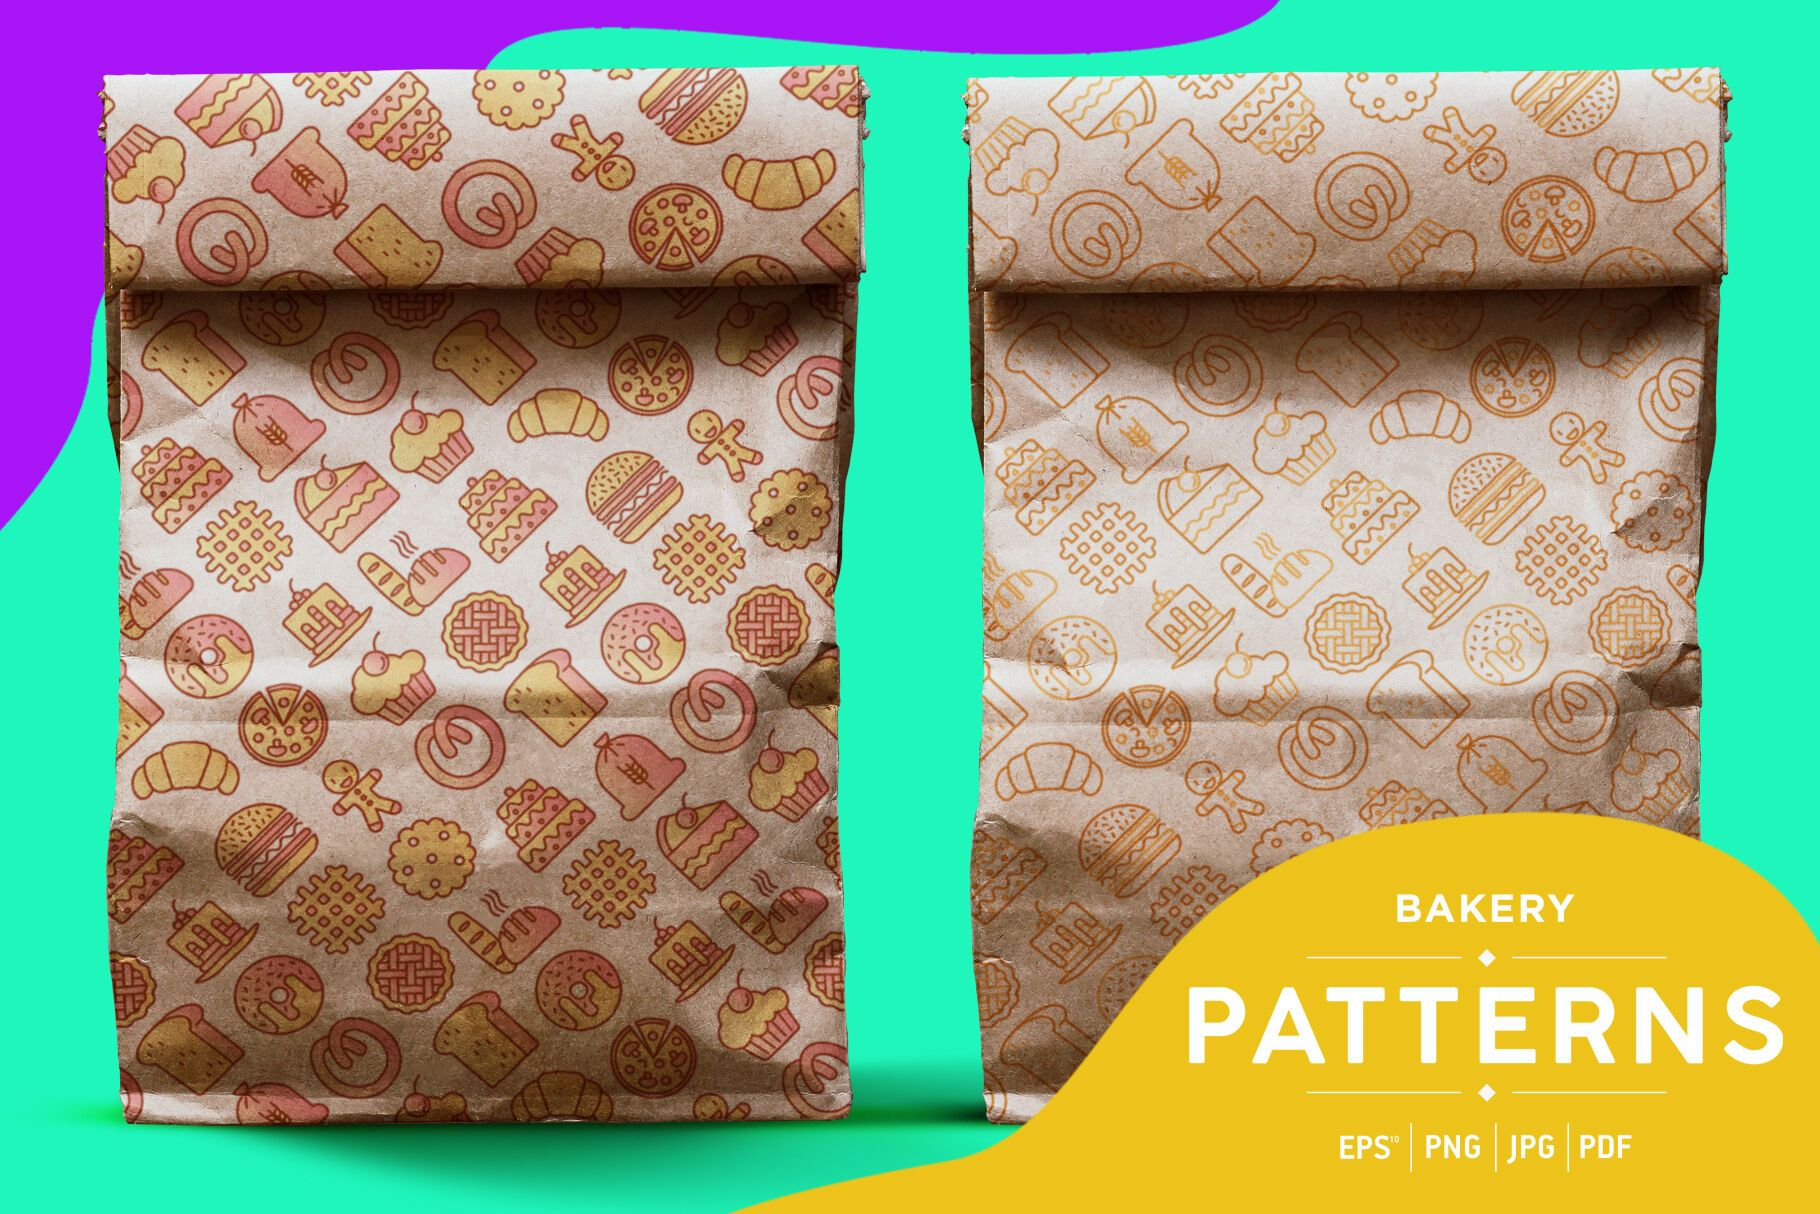 Bakery Patterns Collection By Alexey Blogoodf